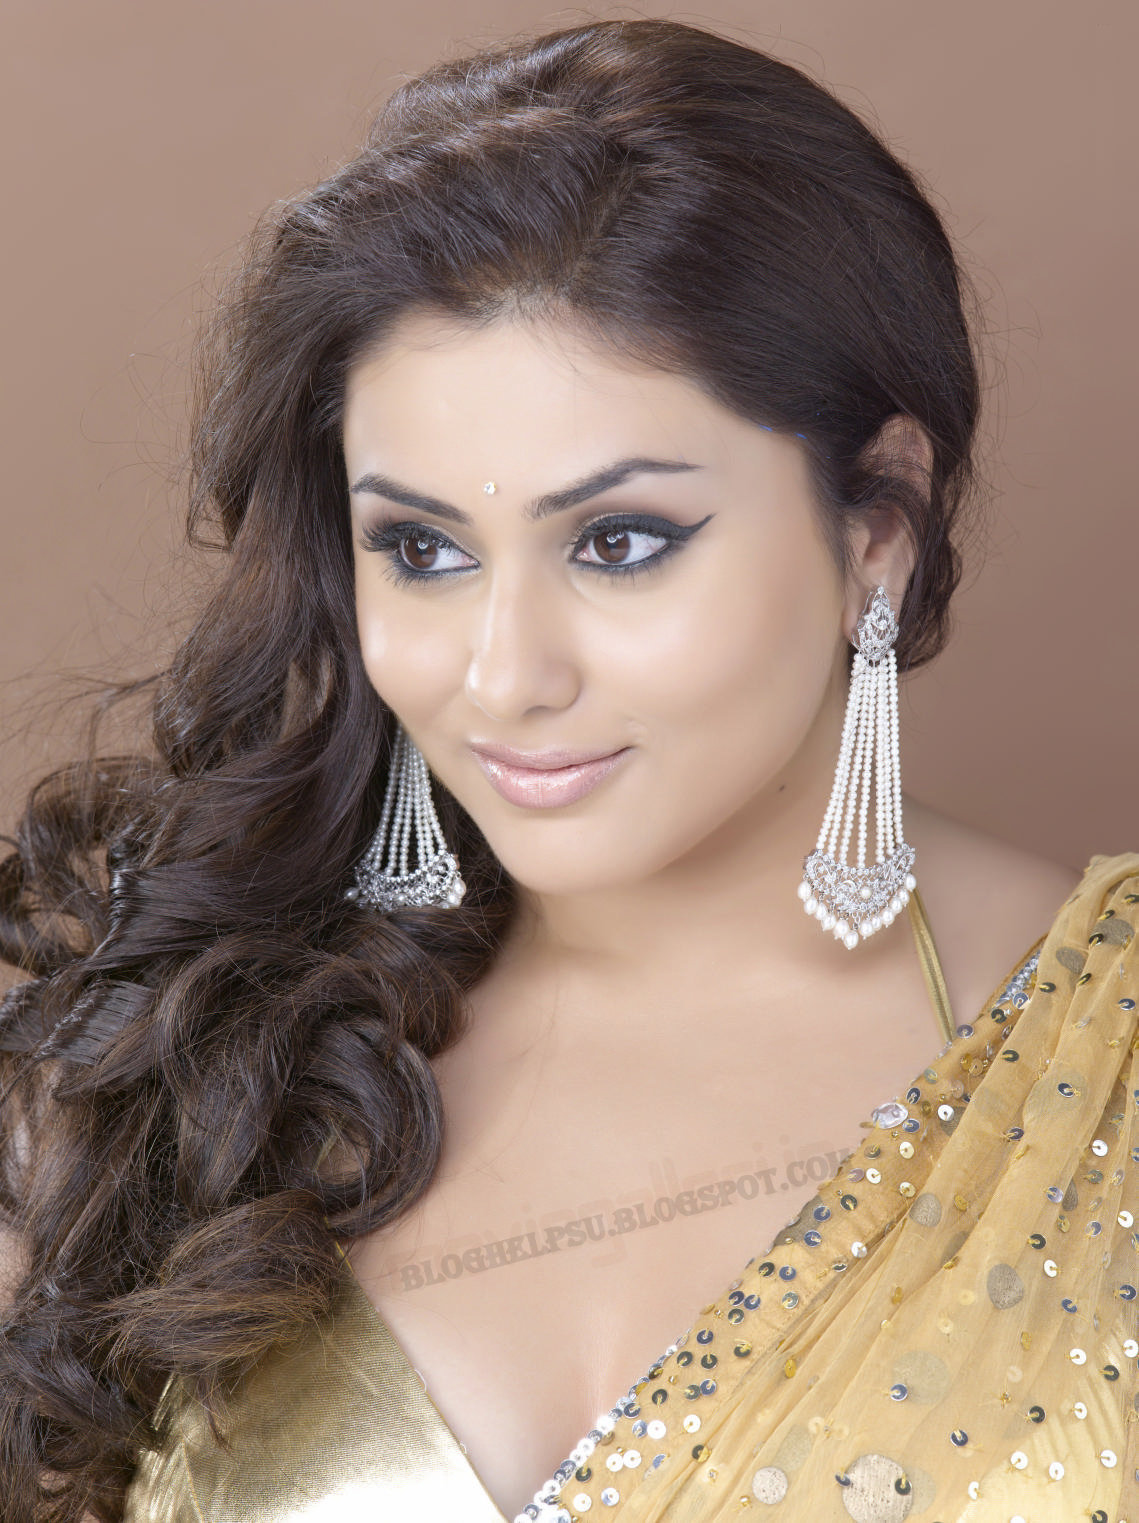 http://3.bp.blogspot.com/_FvM6VcUWsPQ/TO1DIt1pNWI/AAAAAAAAA1k/hSRWncN2i84/s1600/namitha_super_saree_psupero_shoot_wallpapers_11.jpg